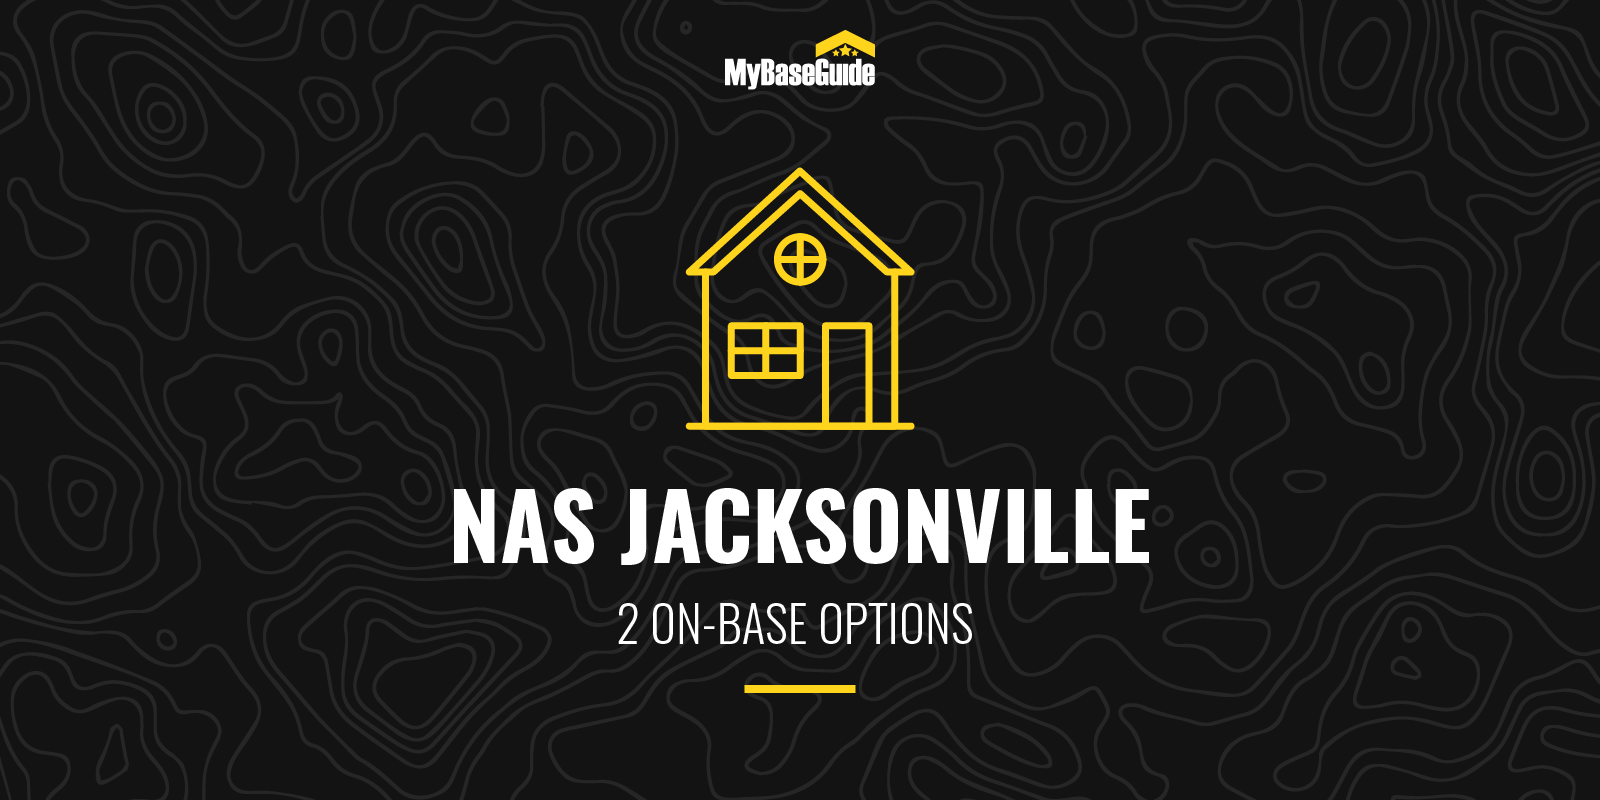 NAS Jacksonville Housing: 2 On-Base Options